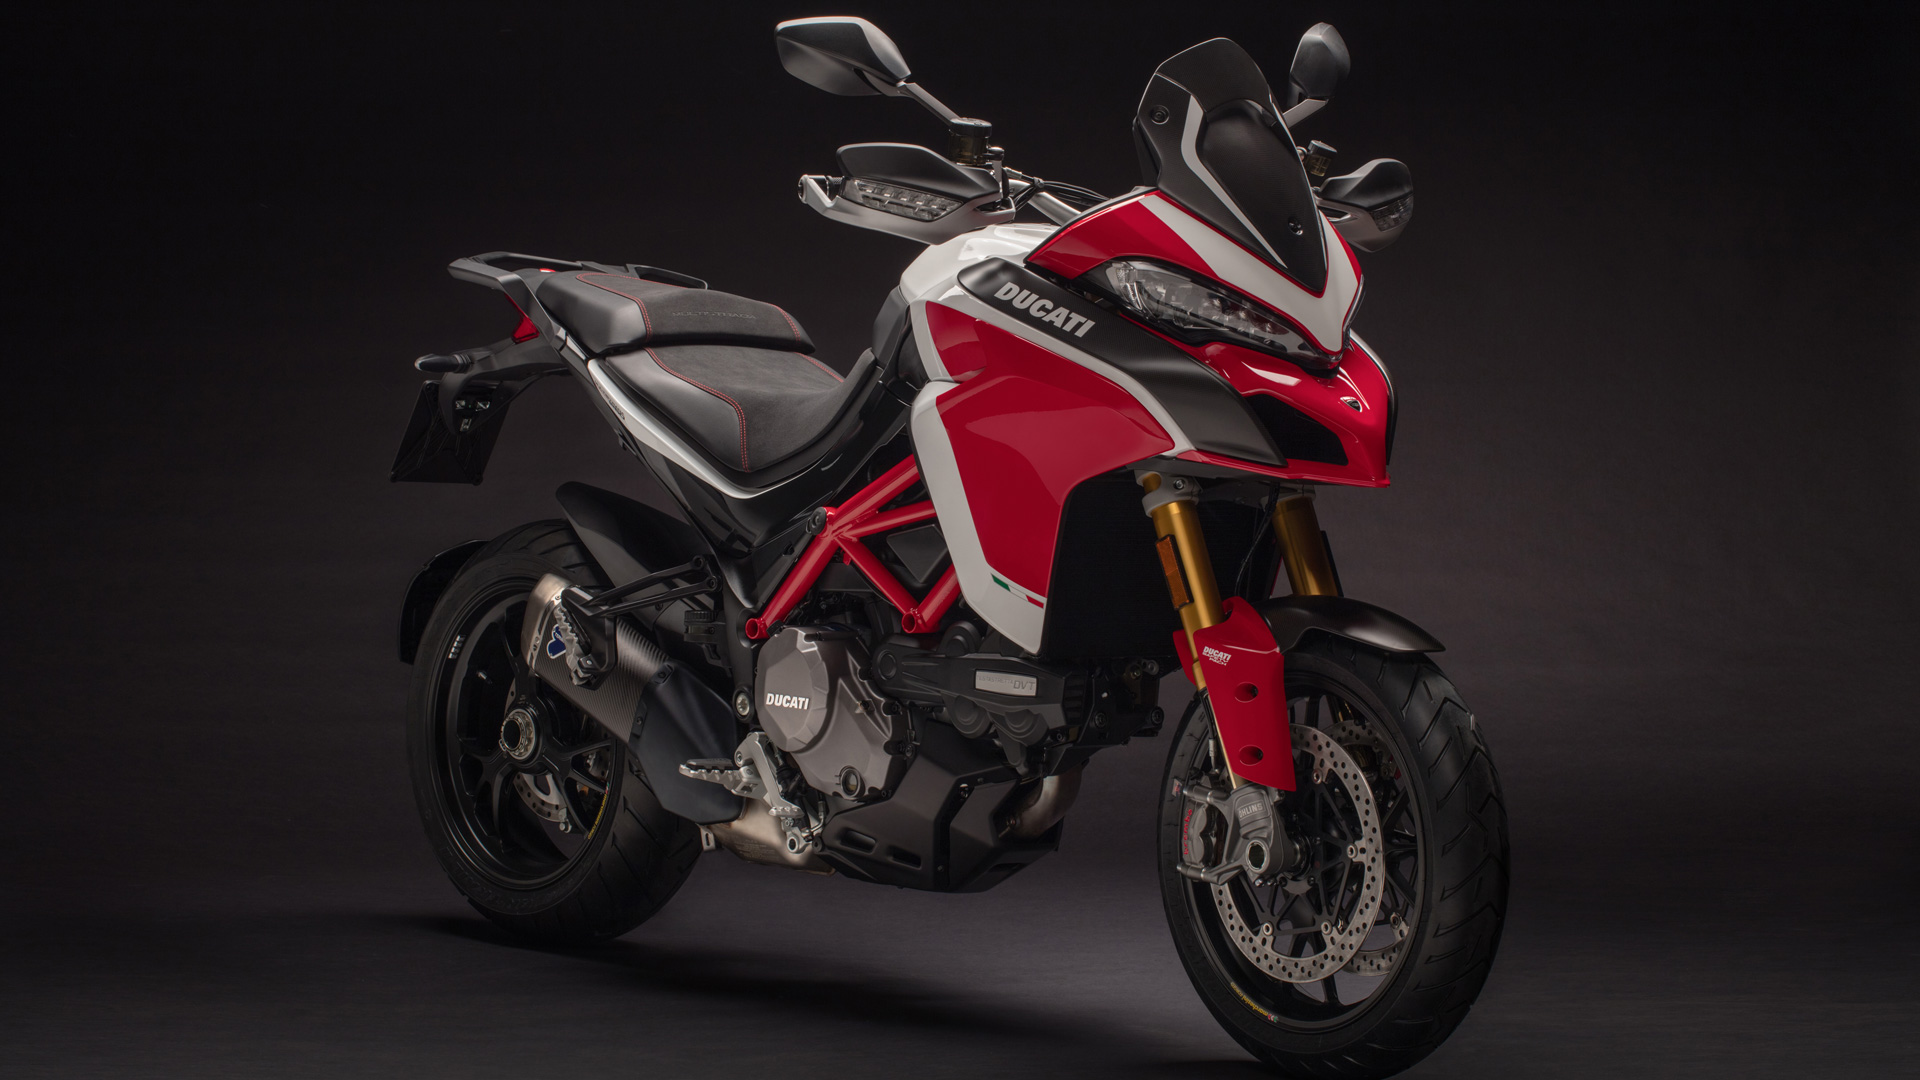 Multistrada 1260PikesPeak MY18 Red 07 Slider Gallery 1920x1080